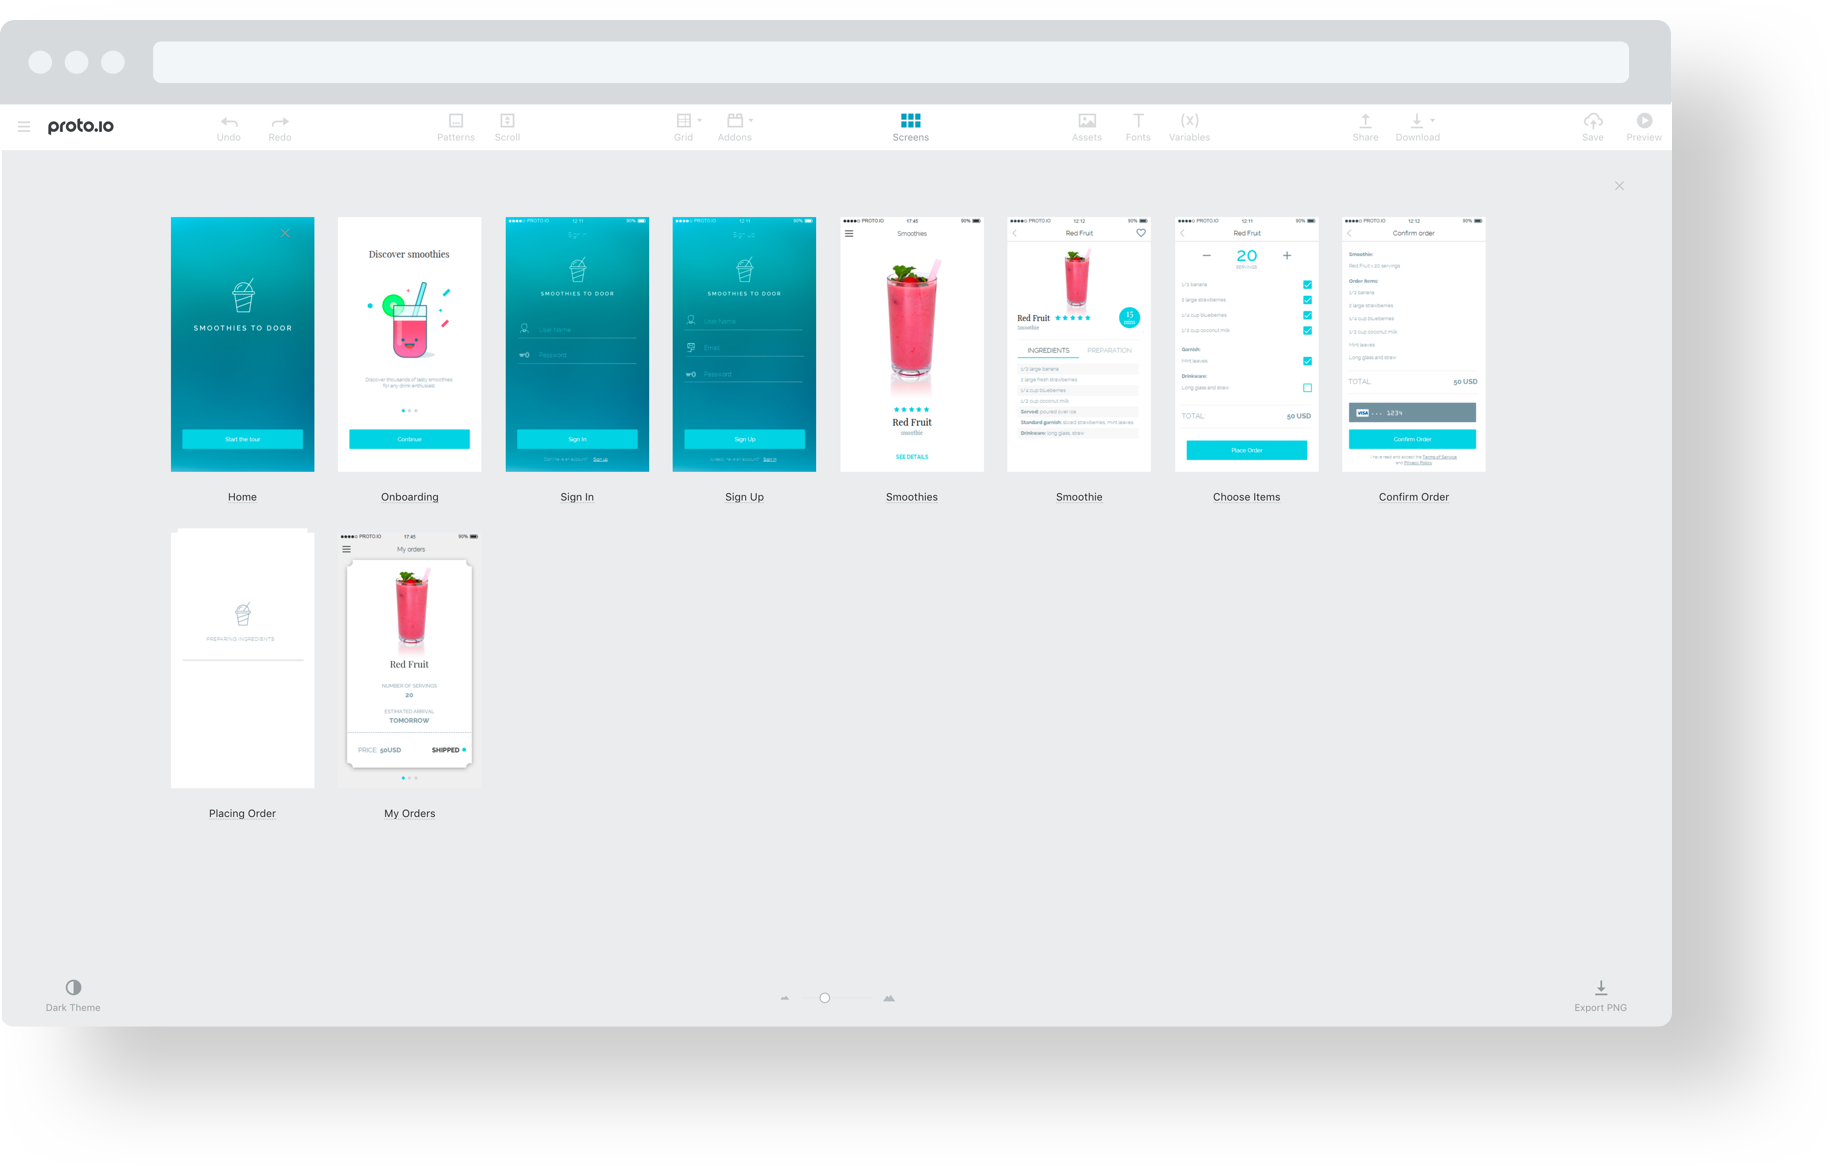 Proto.io editor - Visual Screens Navigator